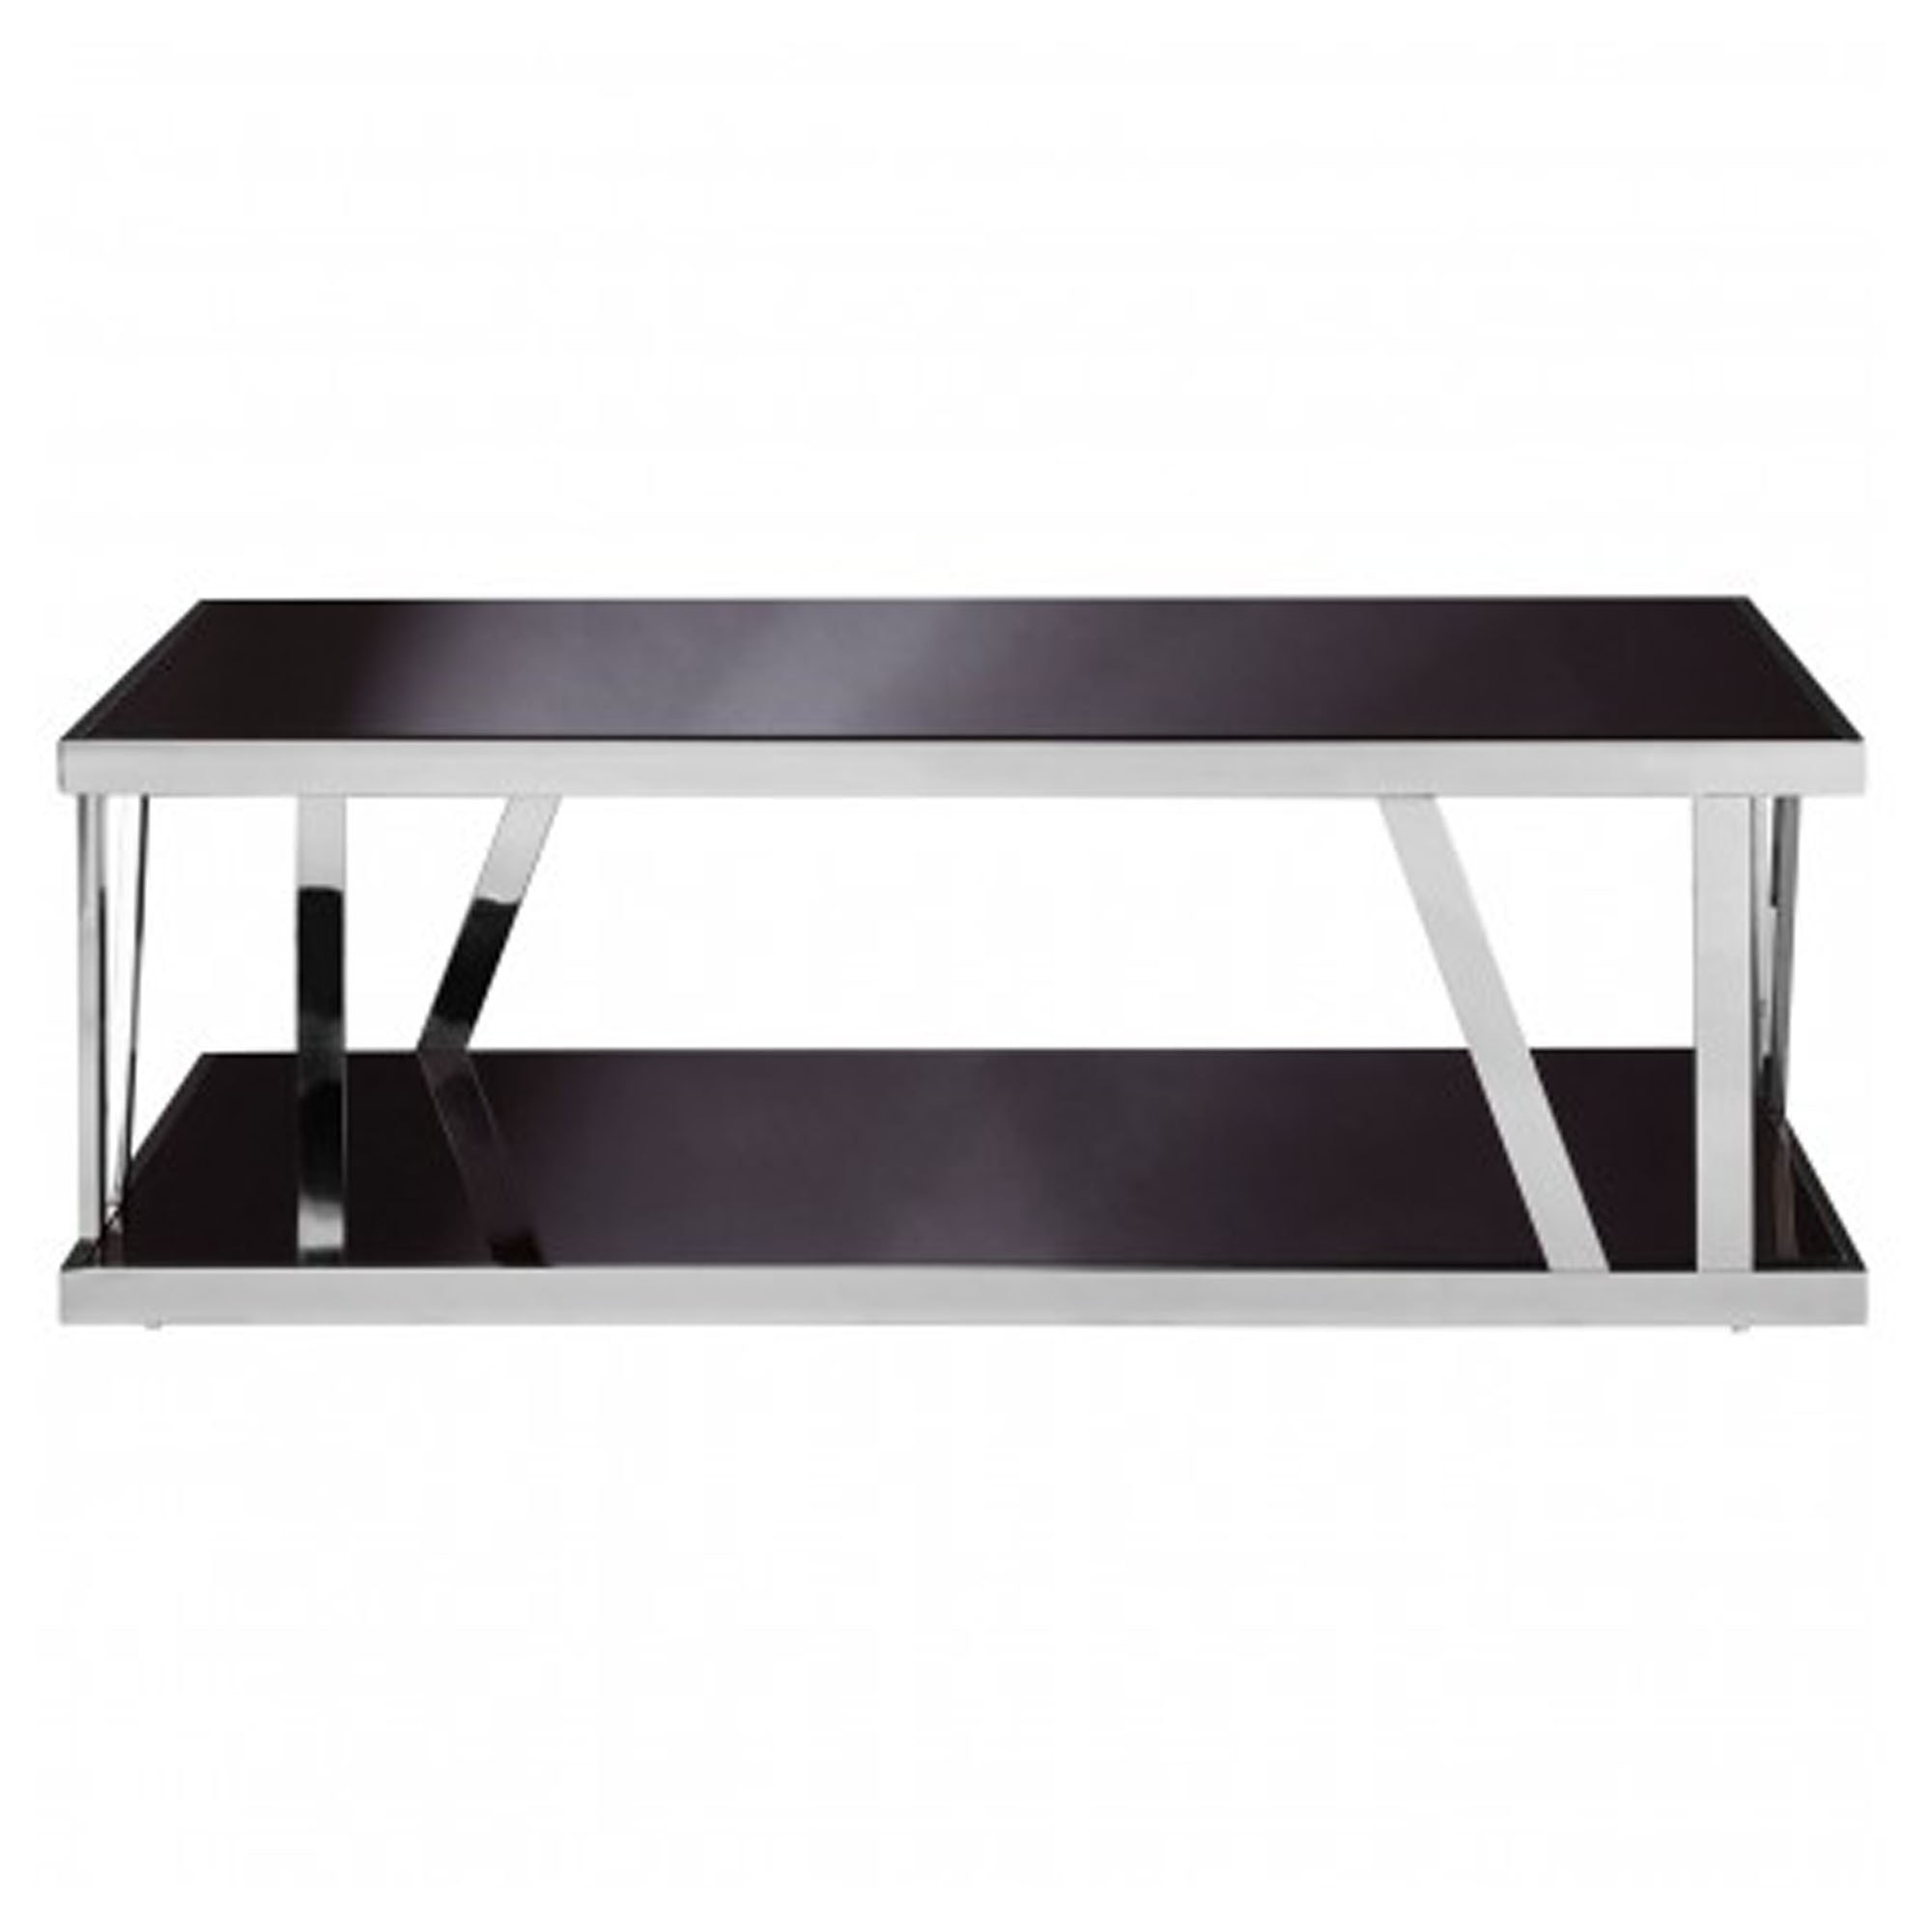 Ackley Black Glass Coffee Table Modern Furniture Coffee Tables